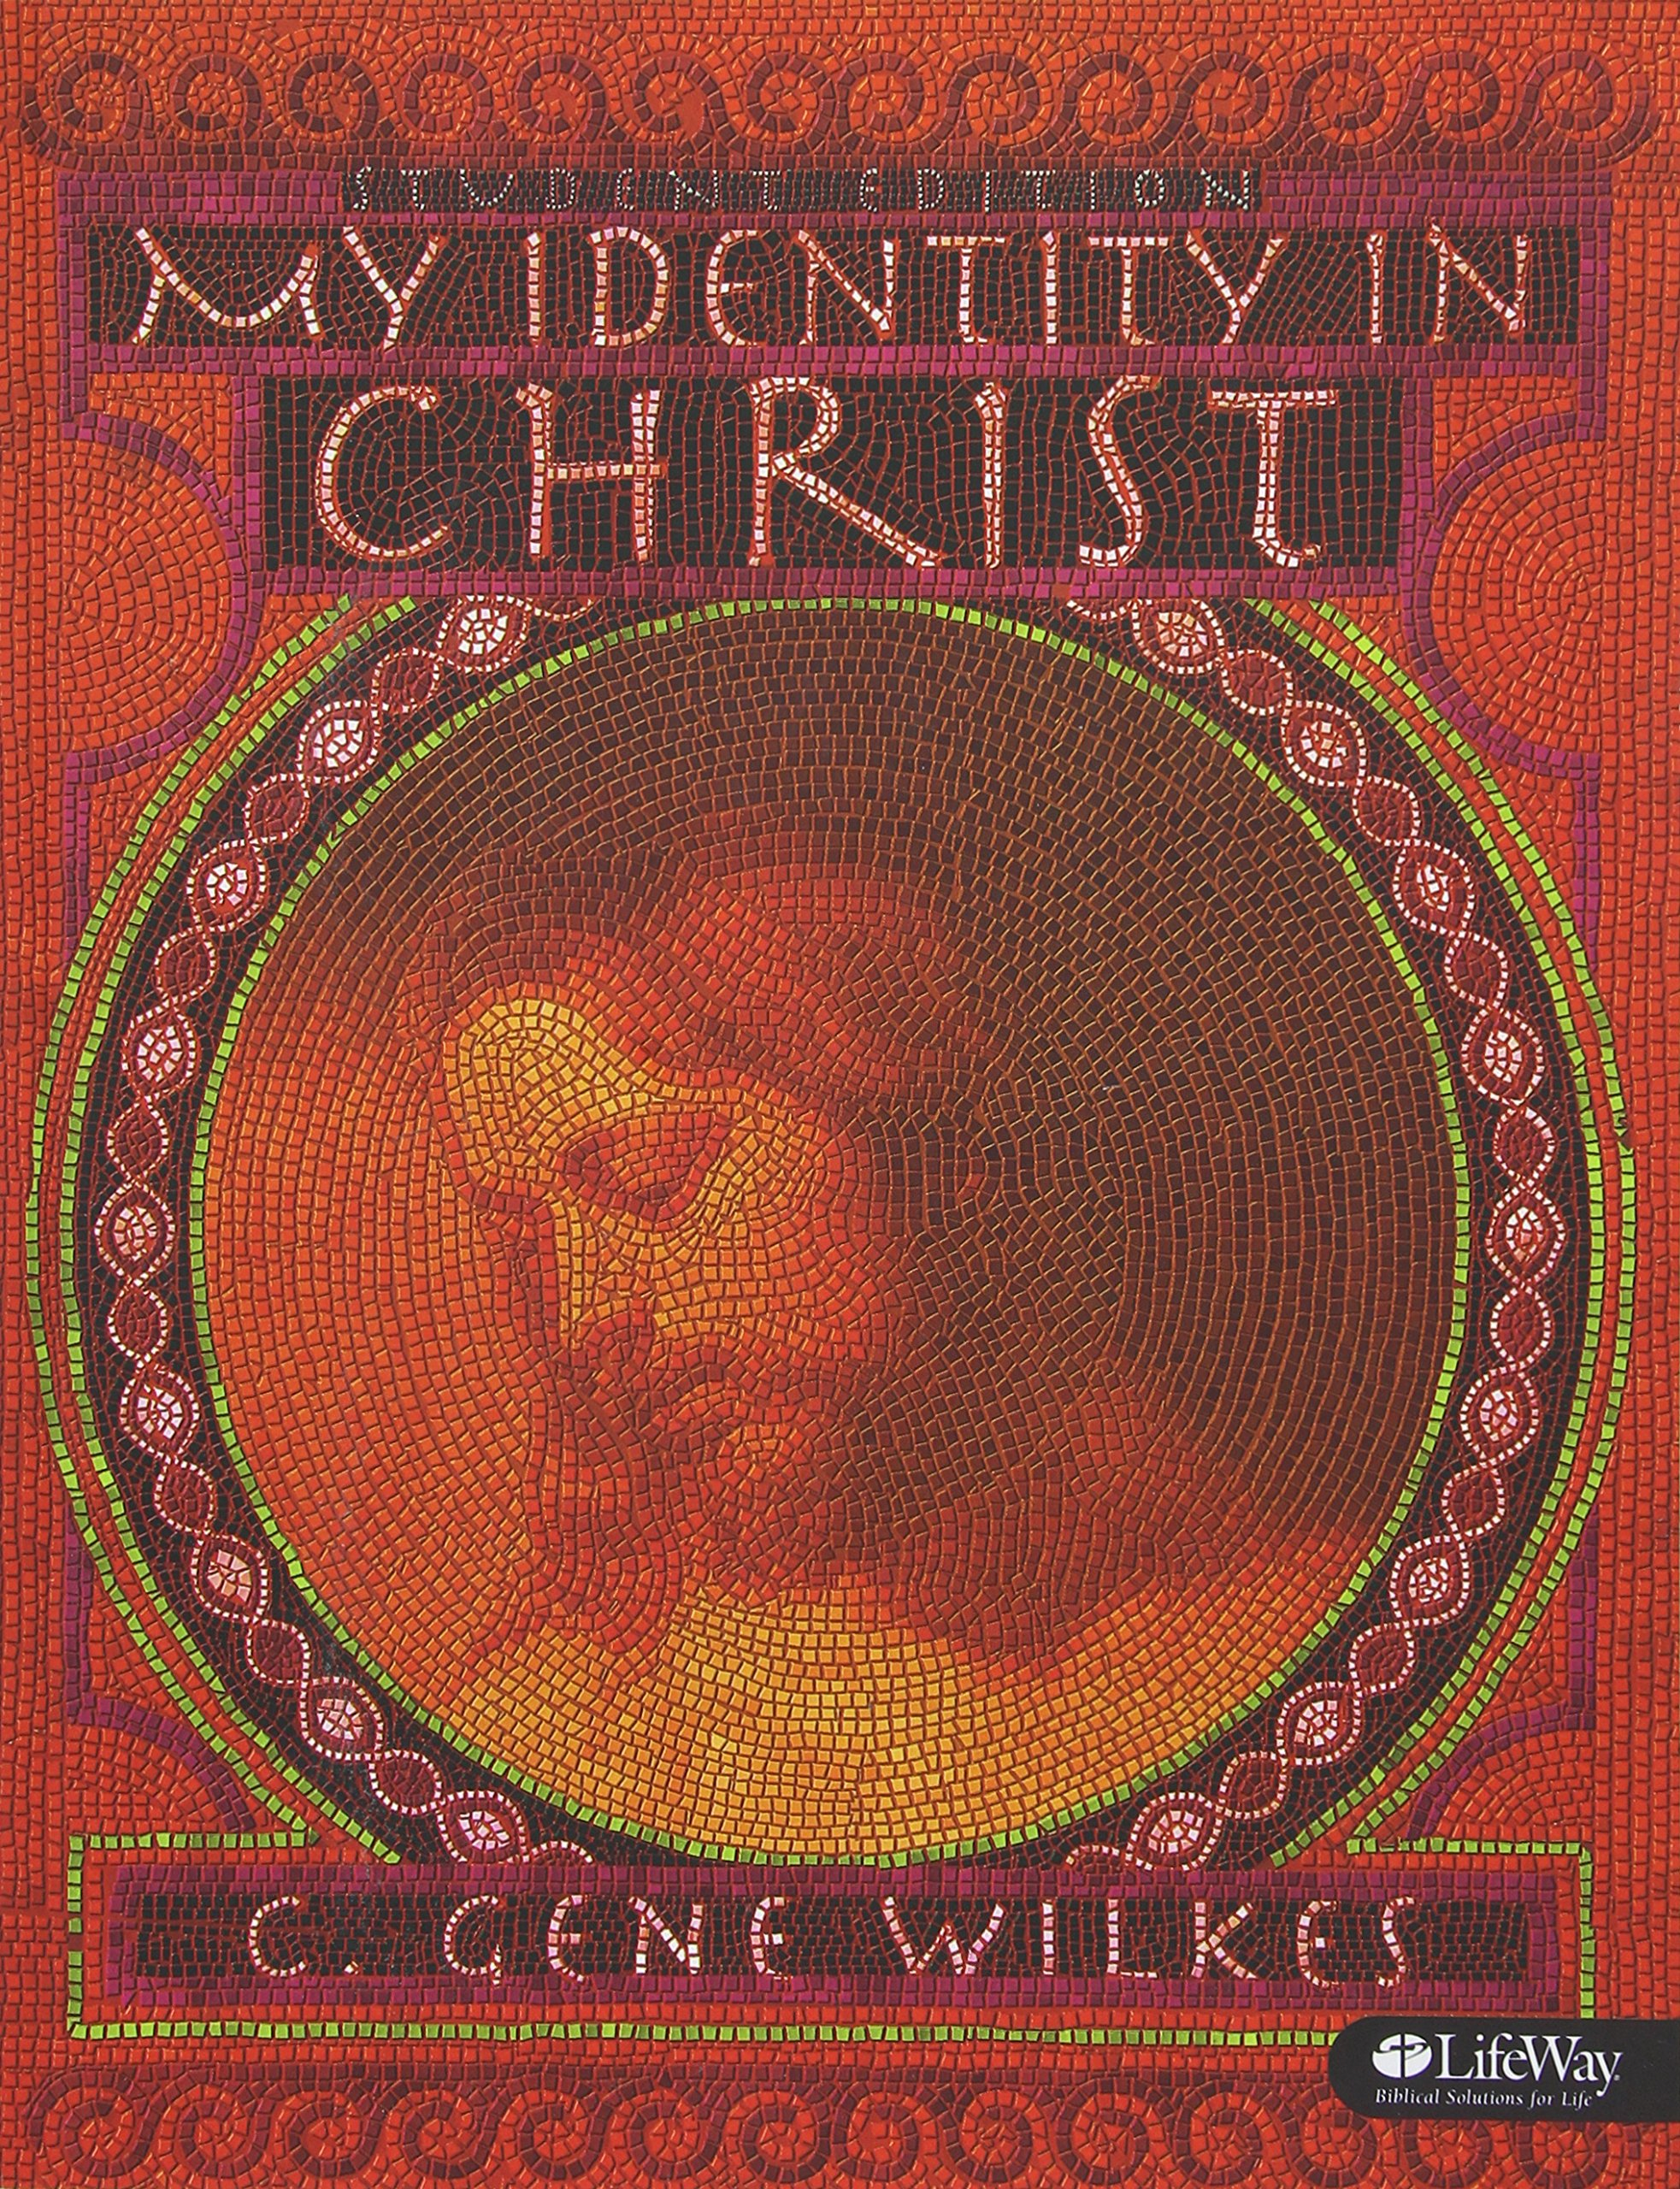 My Identity in Christ - Student Edition